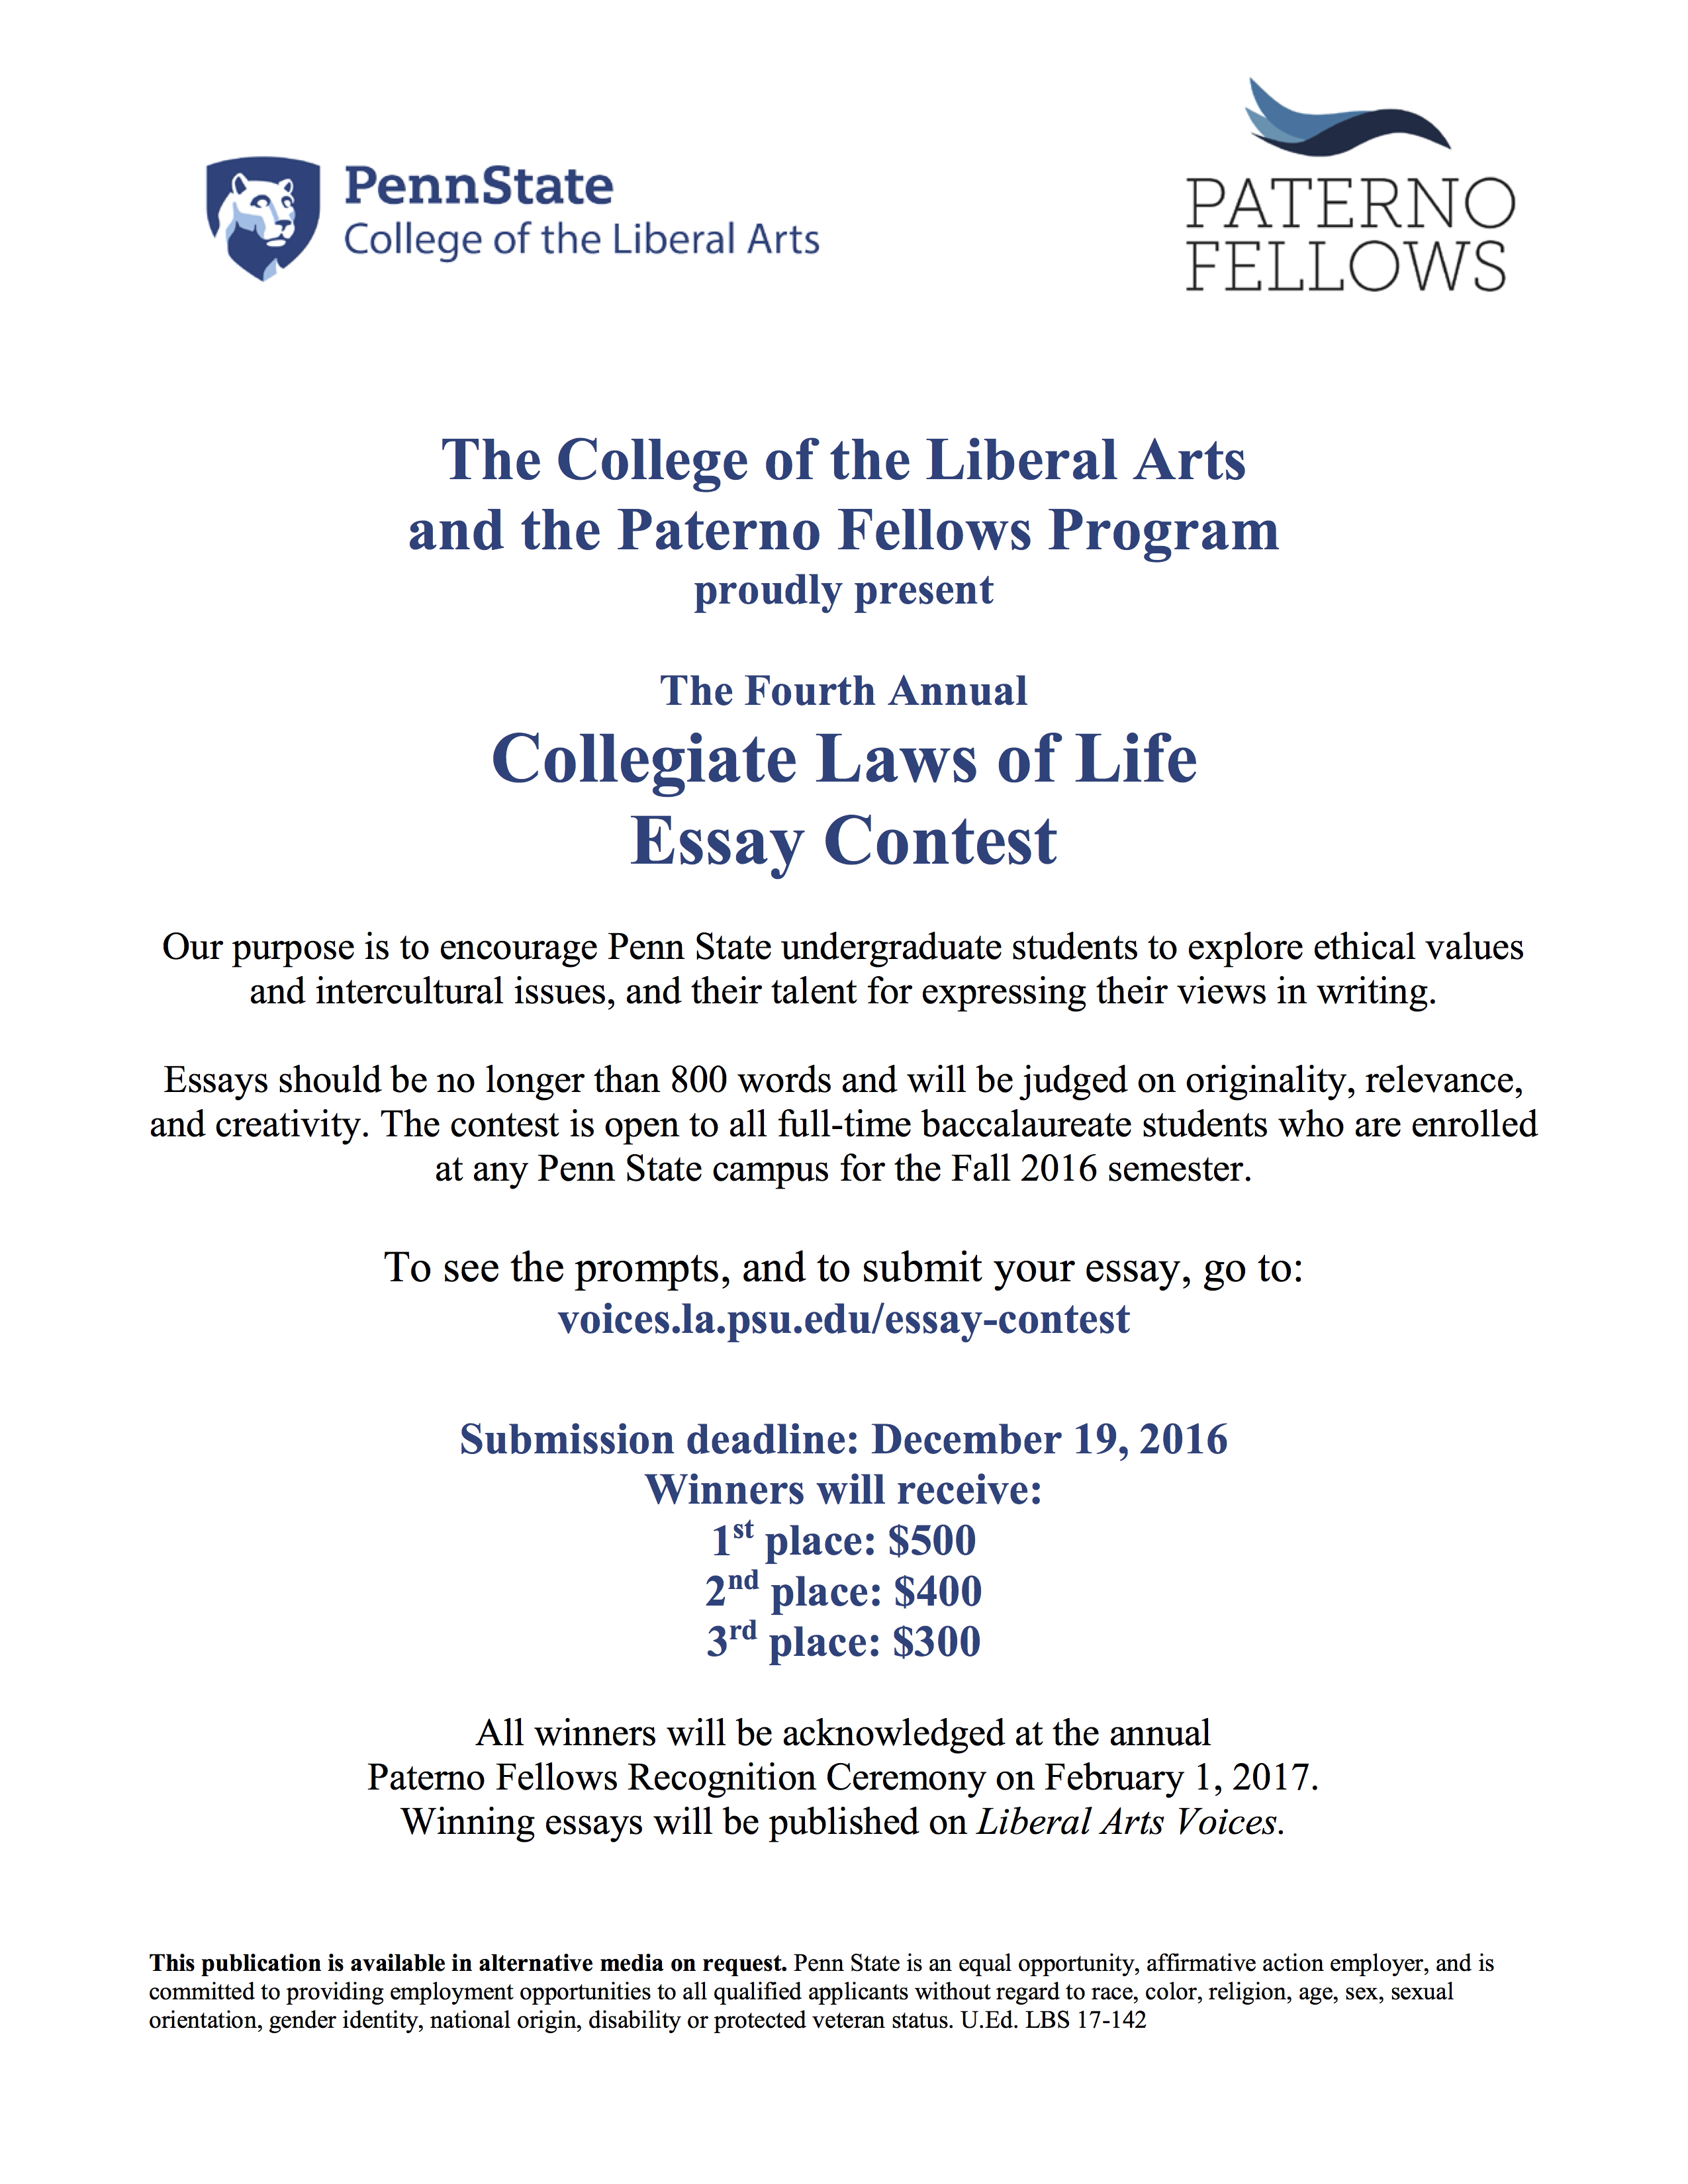 007 Essay Example Law Of Life Collegiate Laws Contest Awesome Ohio 2016 Competition Bahamas 2018 Full